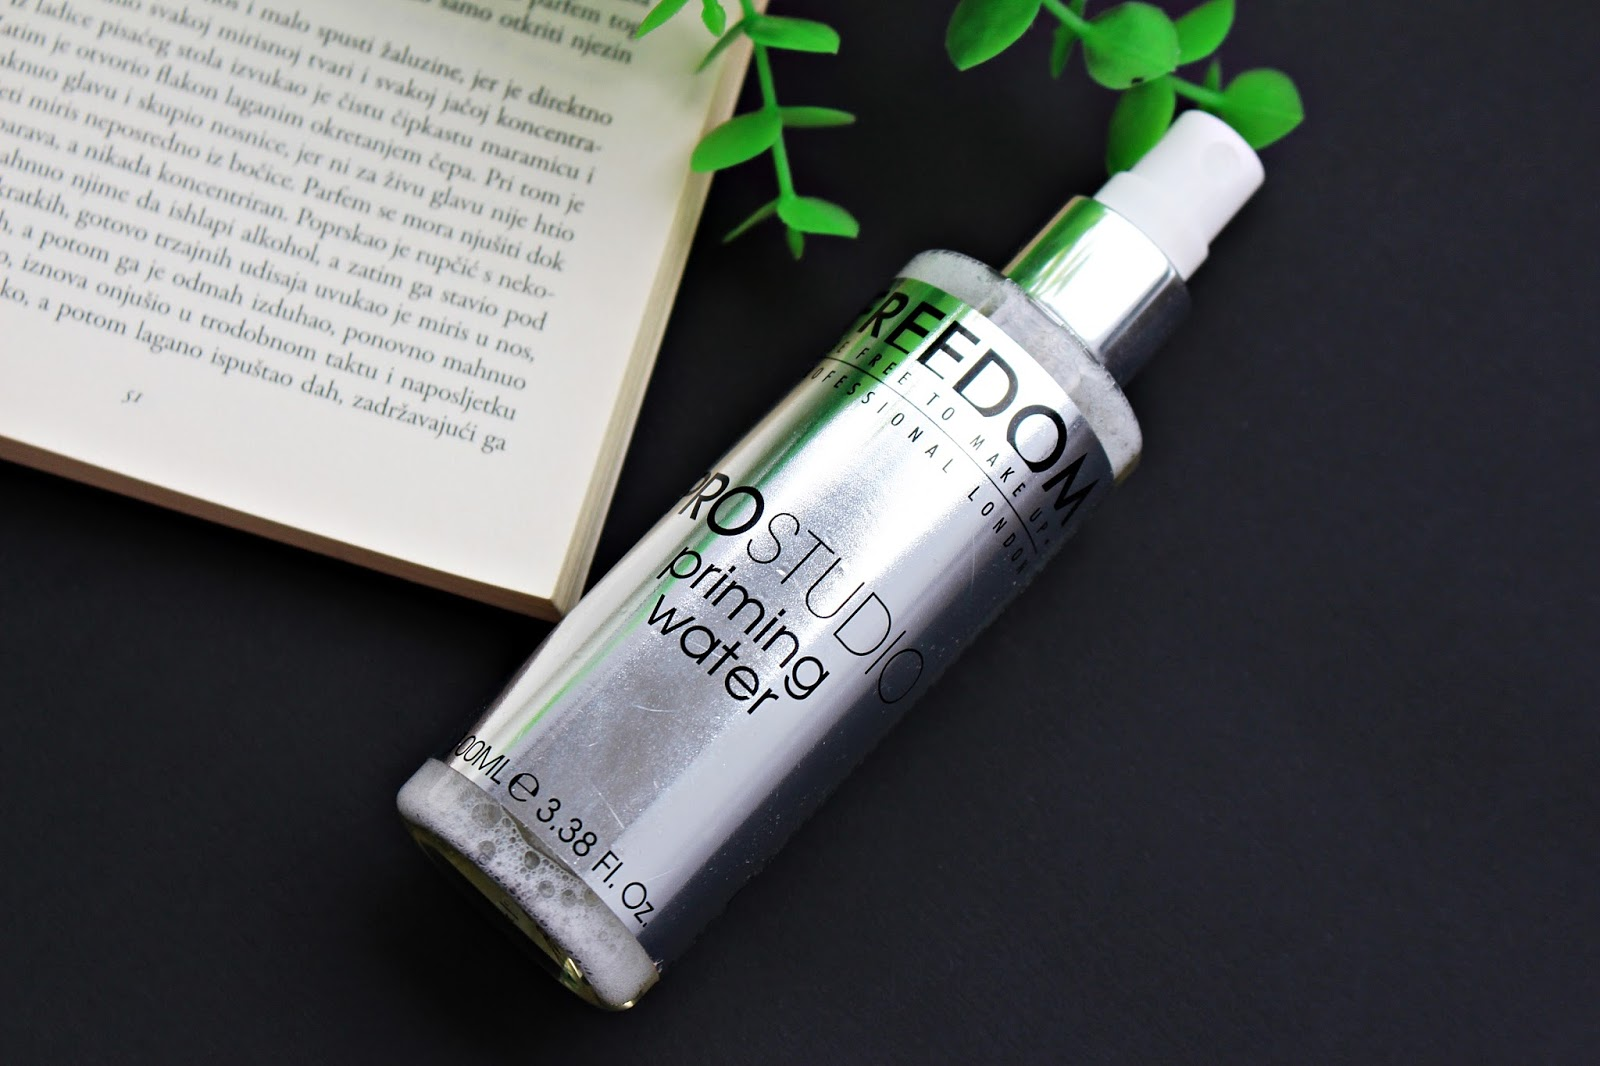 Freedom PROSTUDIO primer water